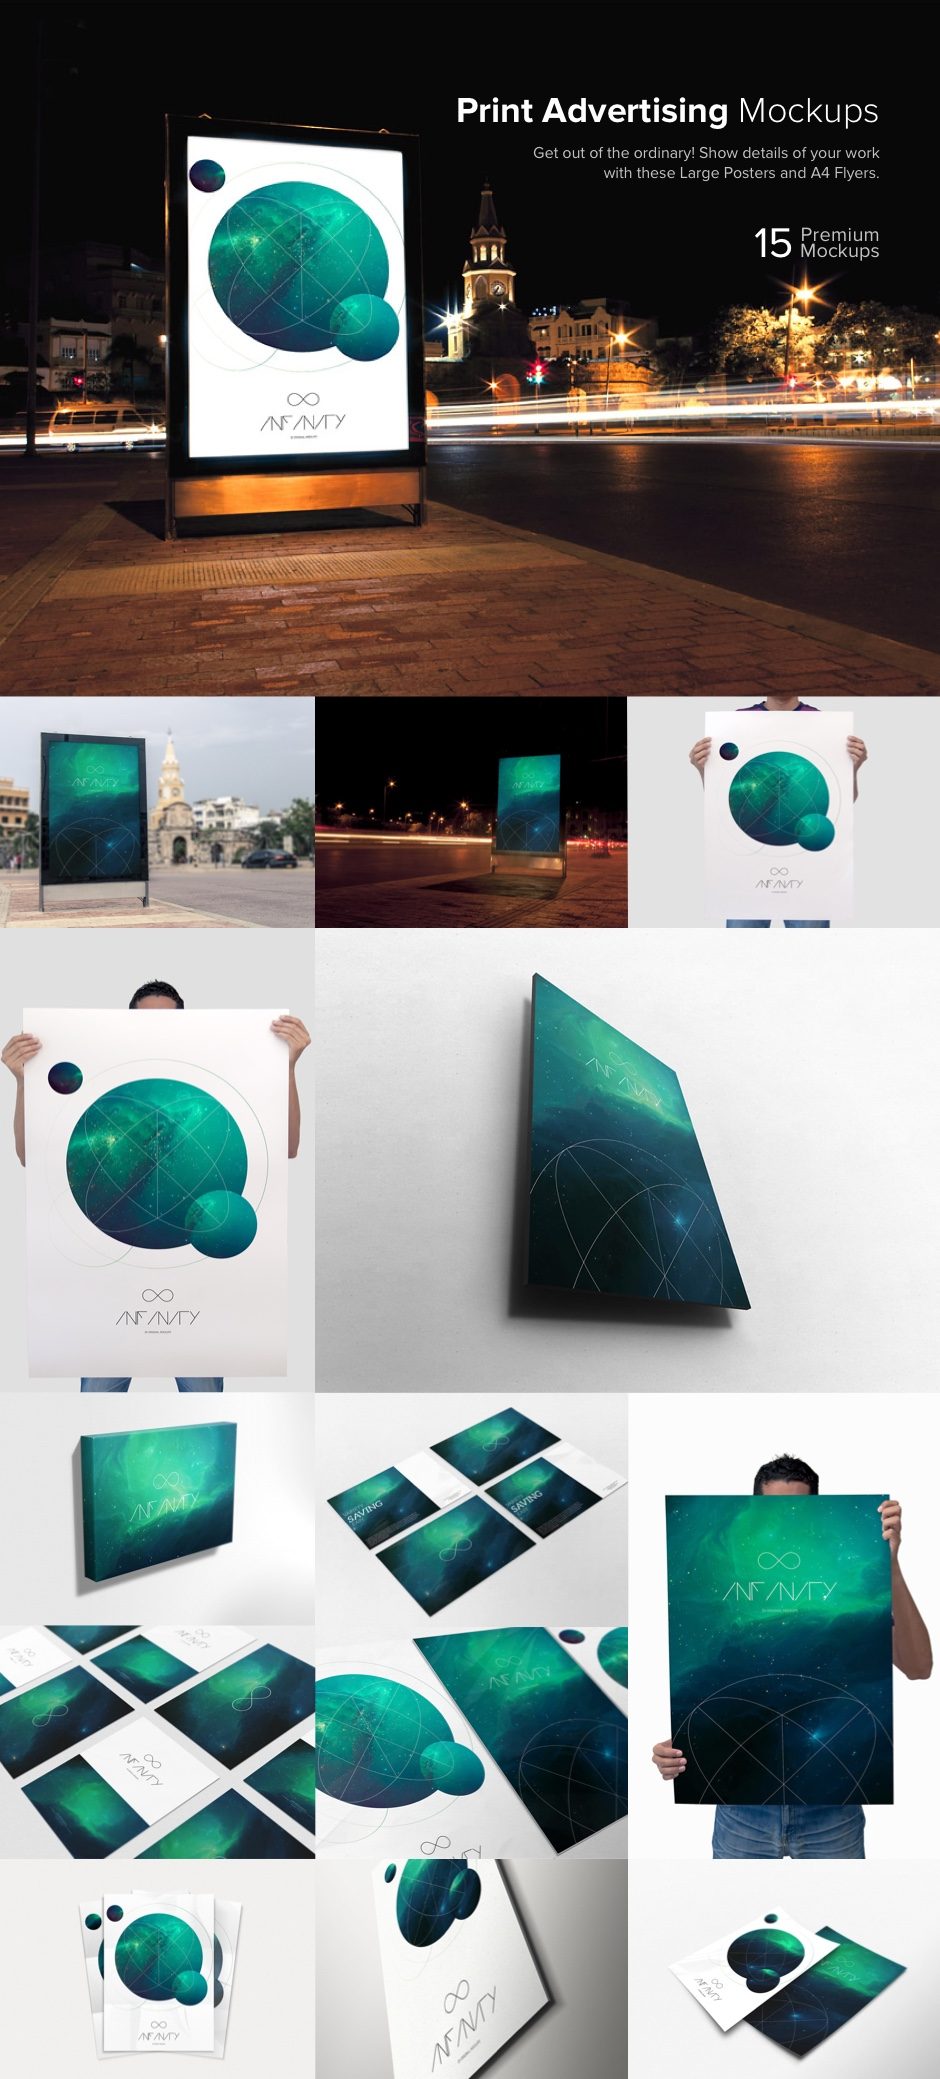 The Massive Mockup Templates Bundle